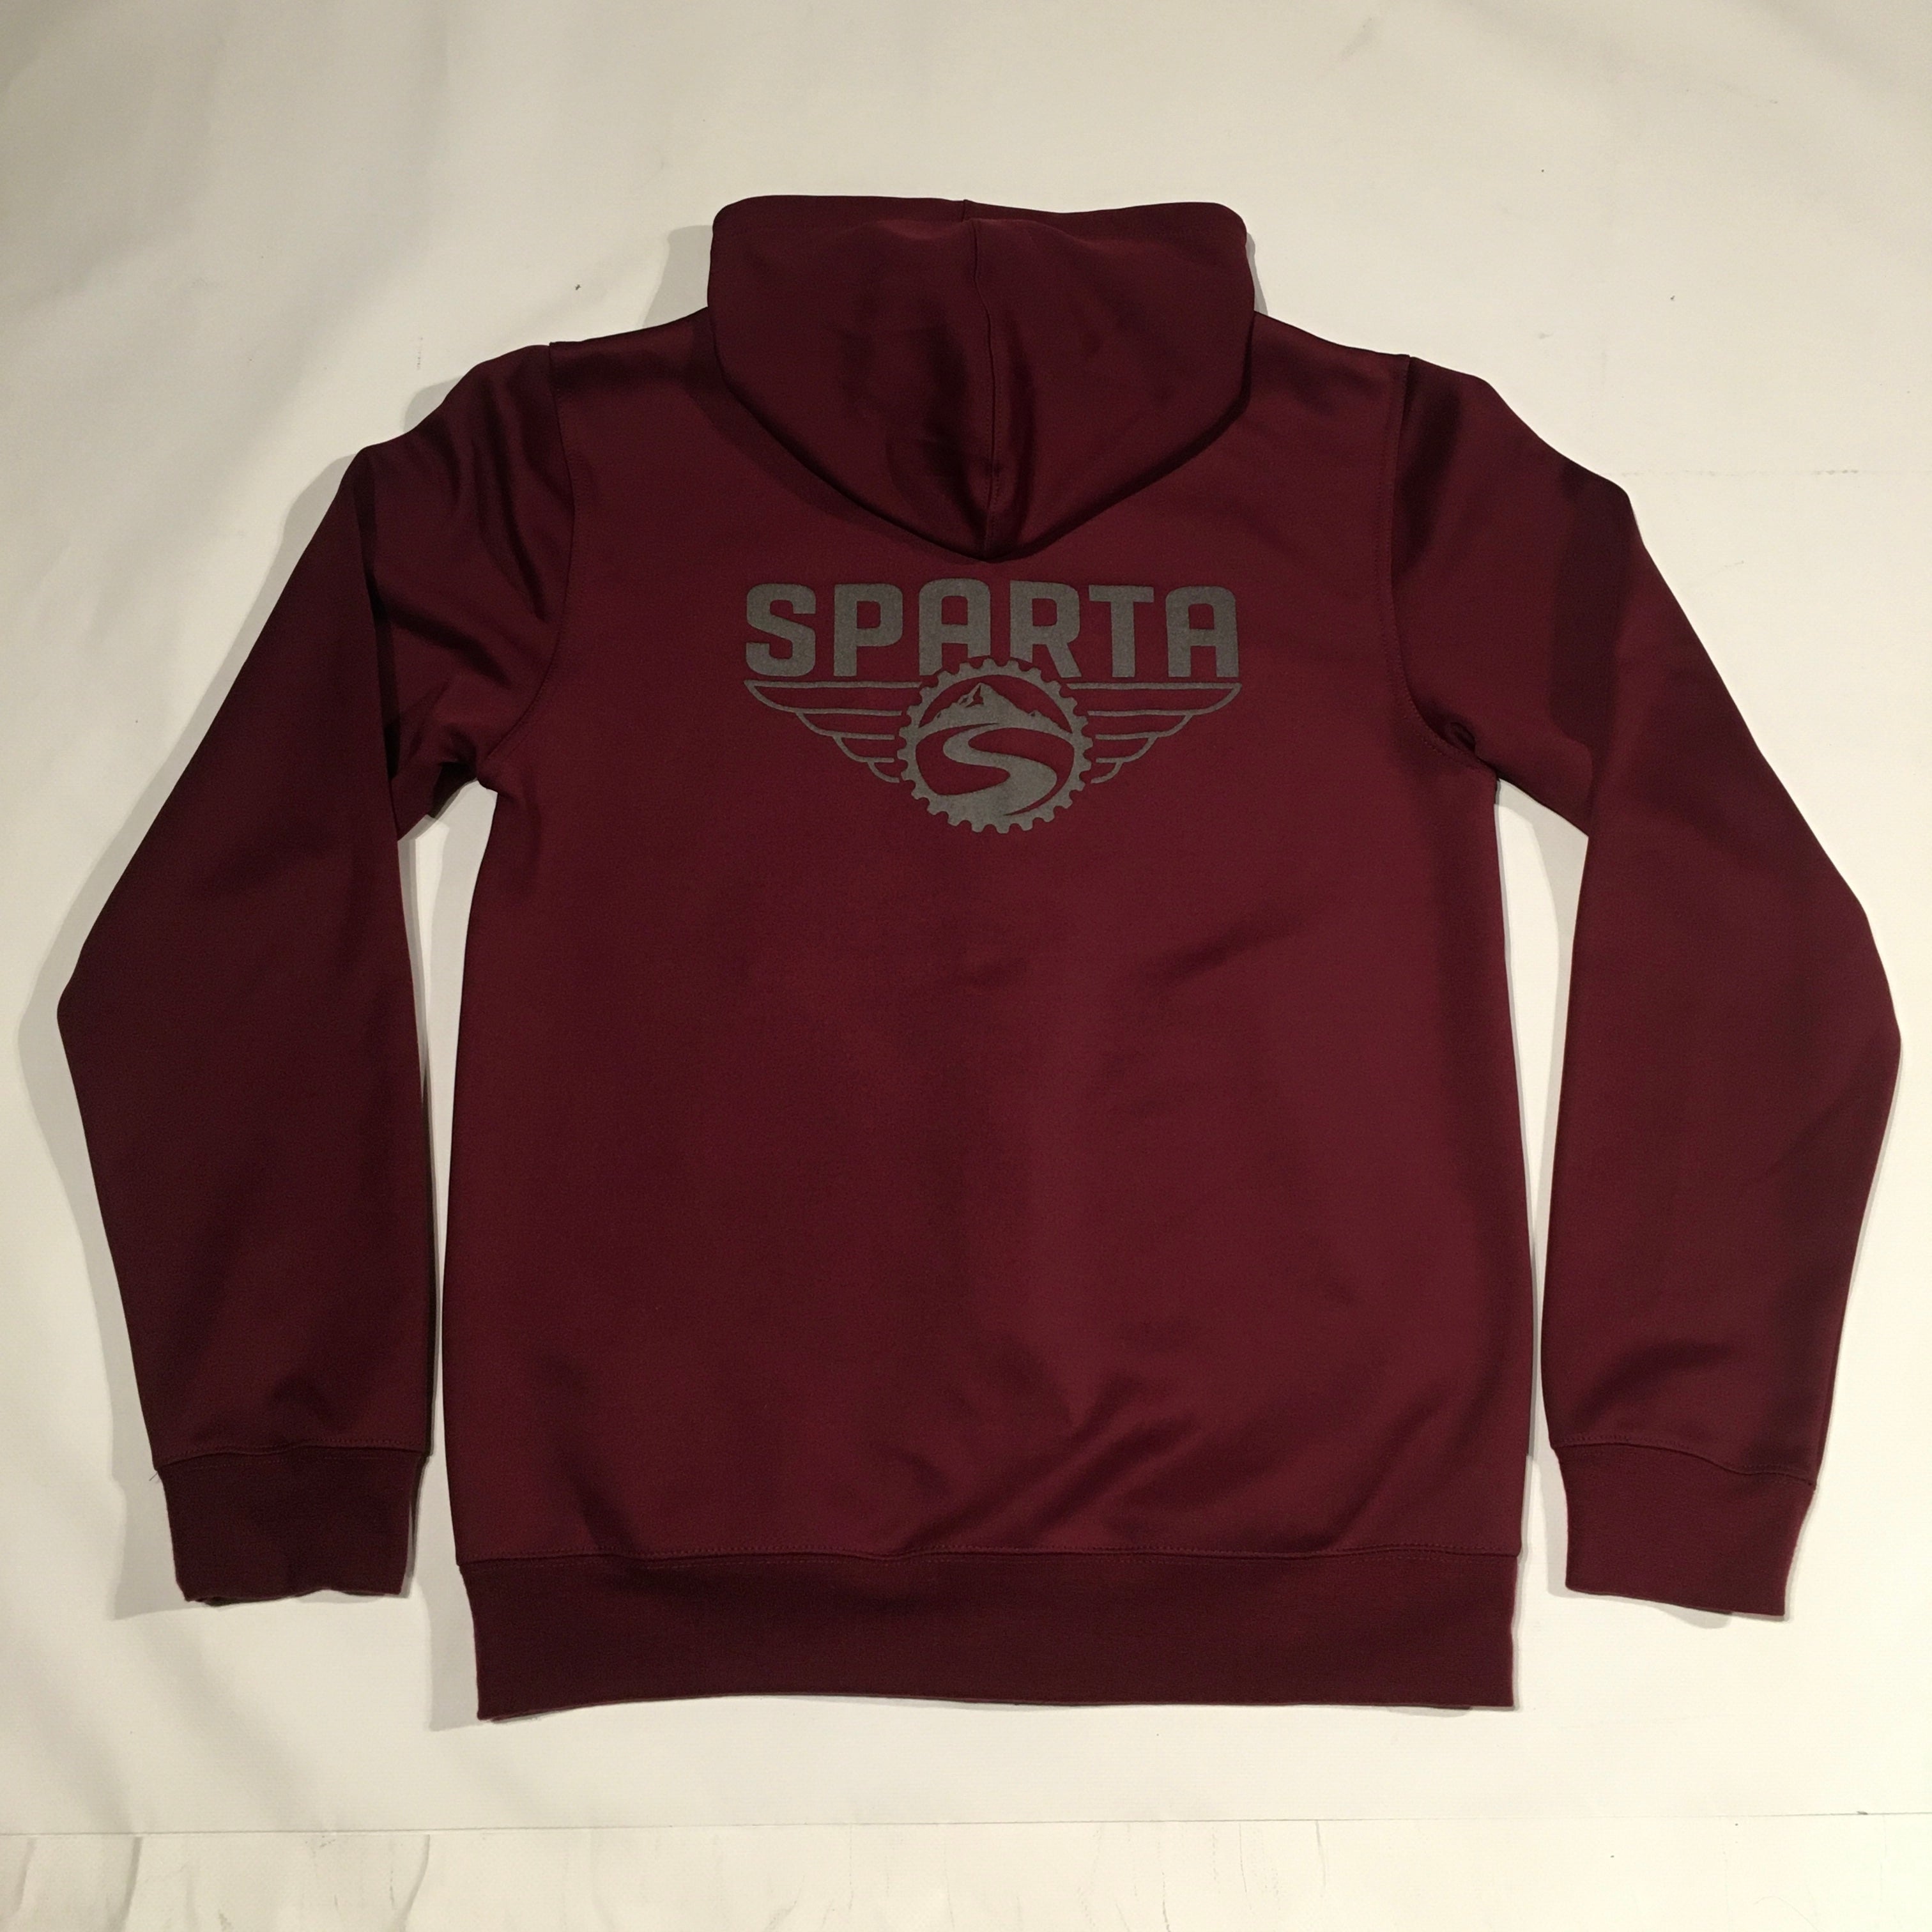 Sparta Zip Up Hoodie with Reflective Logos